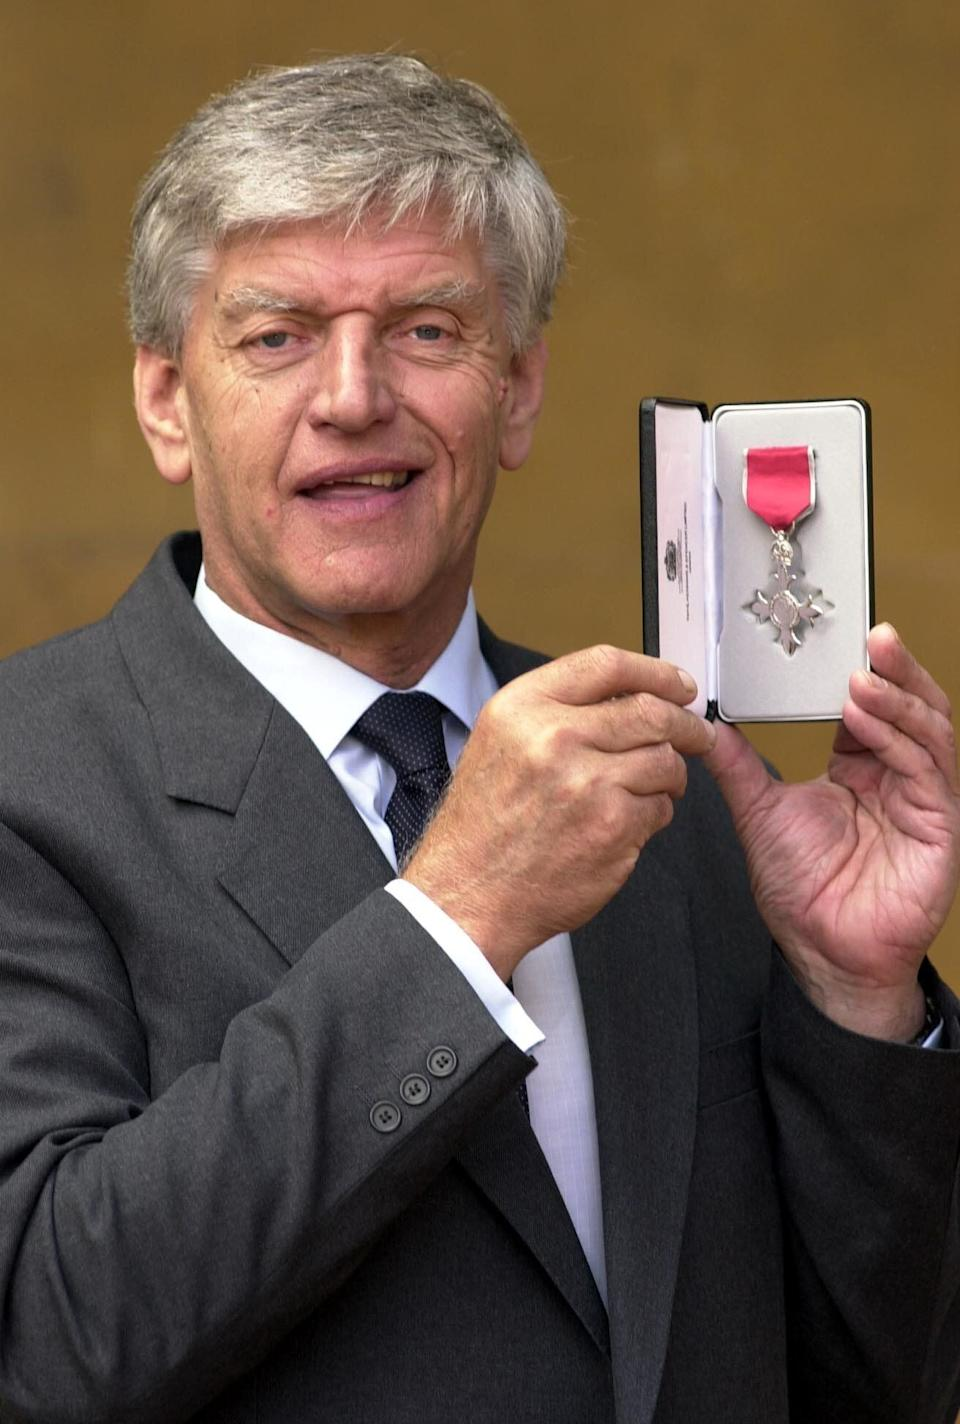 Dave Prowse received an MBE for services to charity and road safety from Queen Elizabeth II in 2000 (Photo: PA)